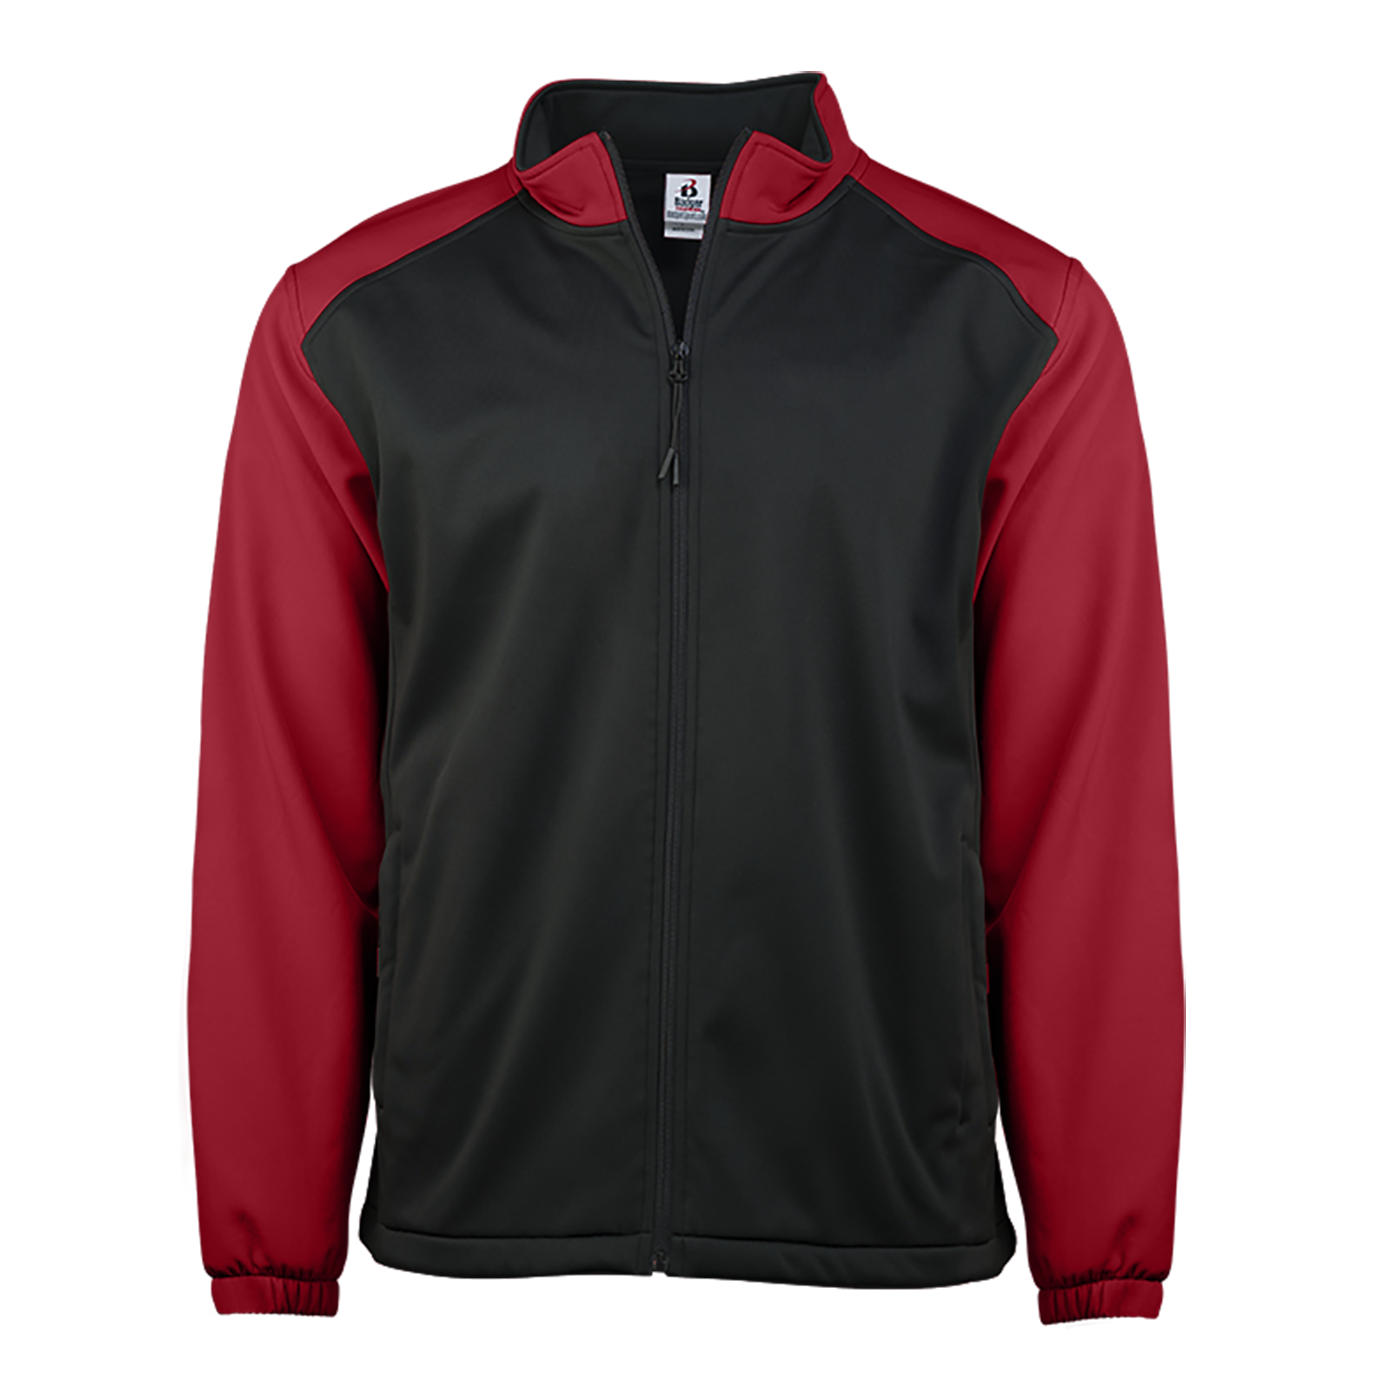 Soft Shell Youth Jacket - Black/Red